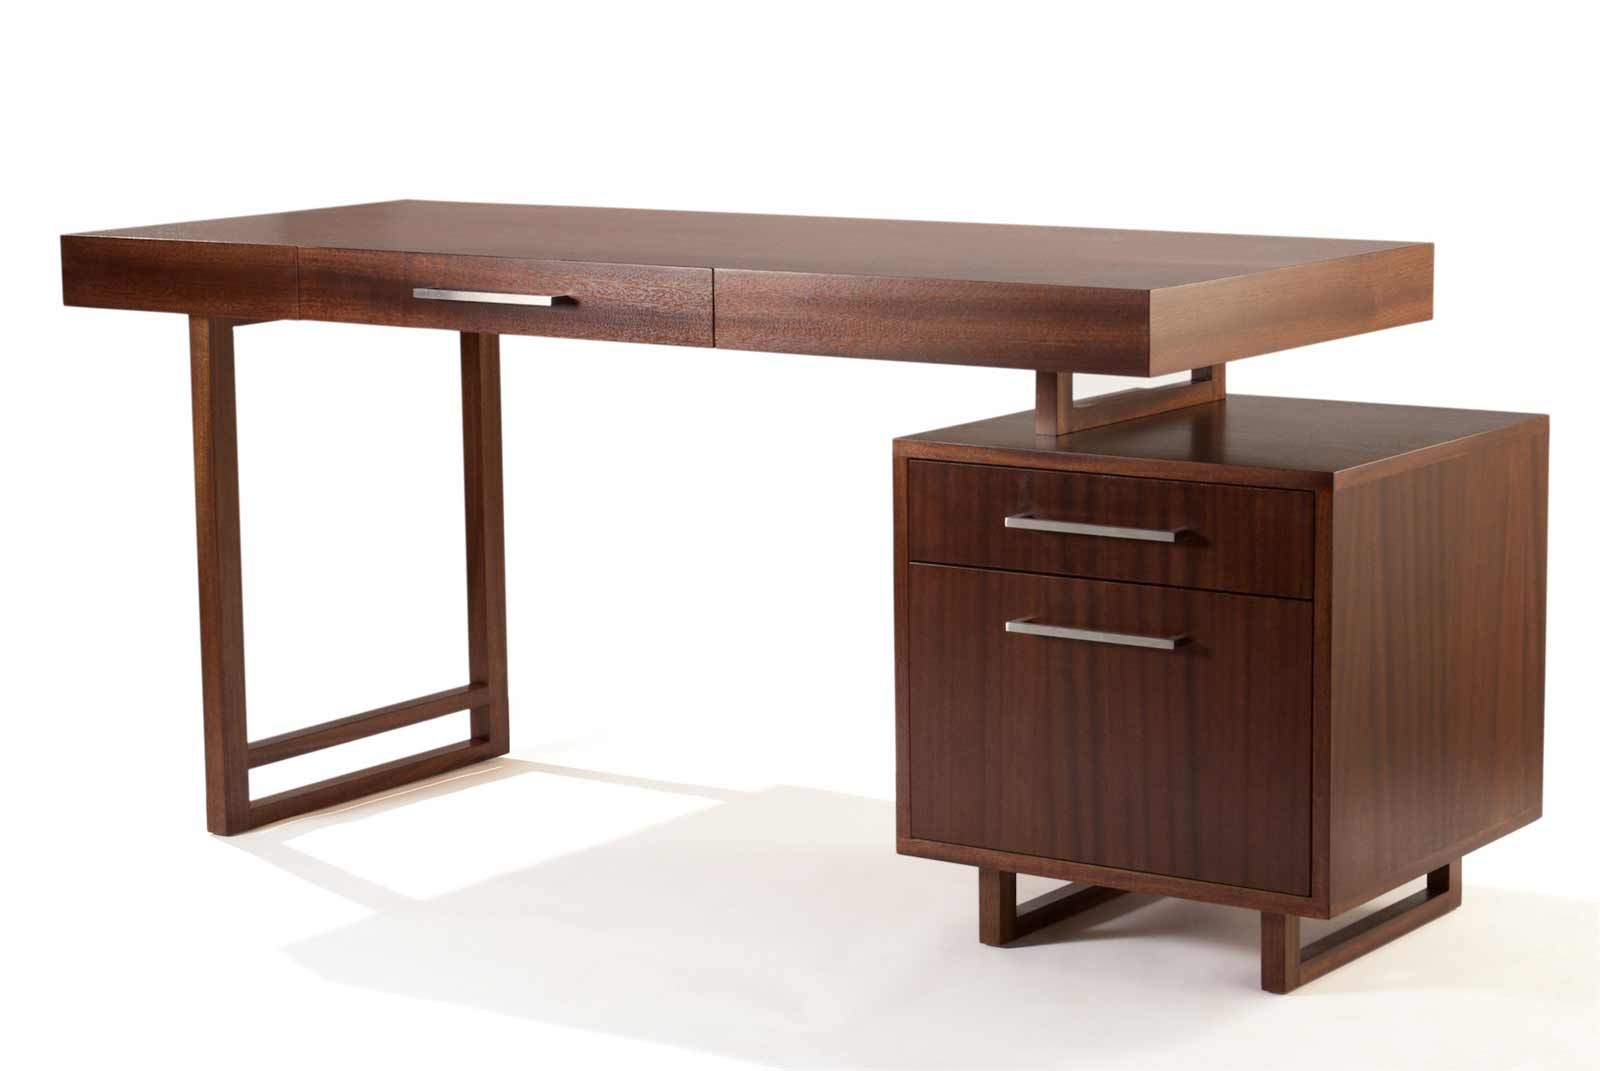 Wooden Desk Designs glamorous 70+ wooden office desk design ideas of office desk wood